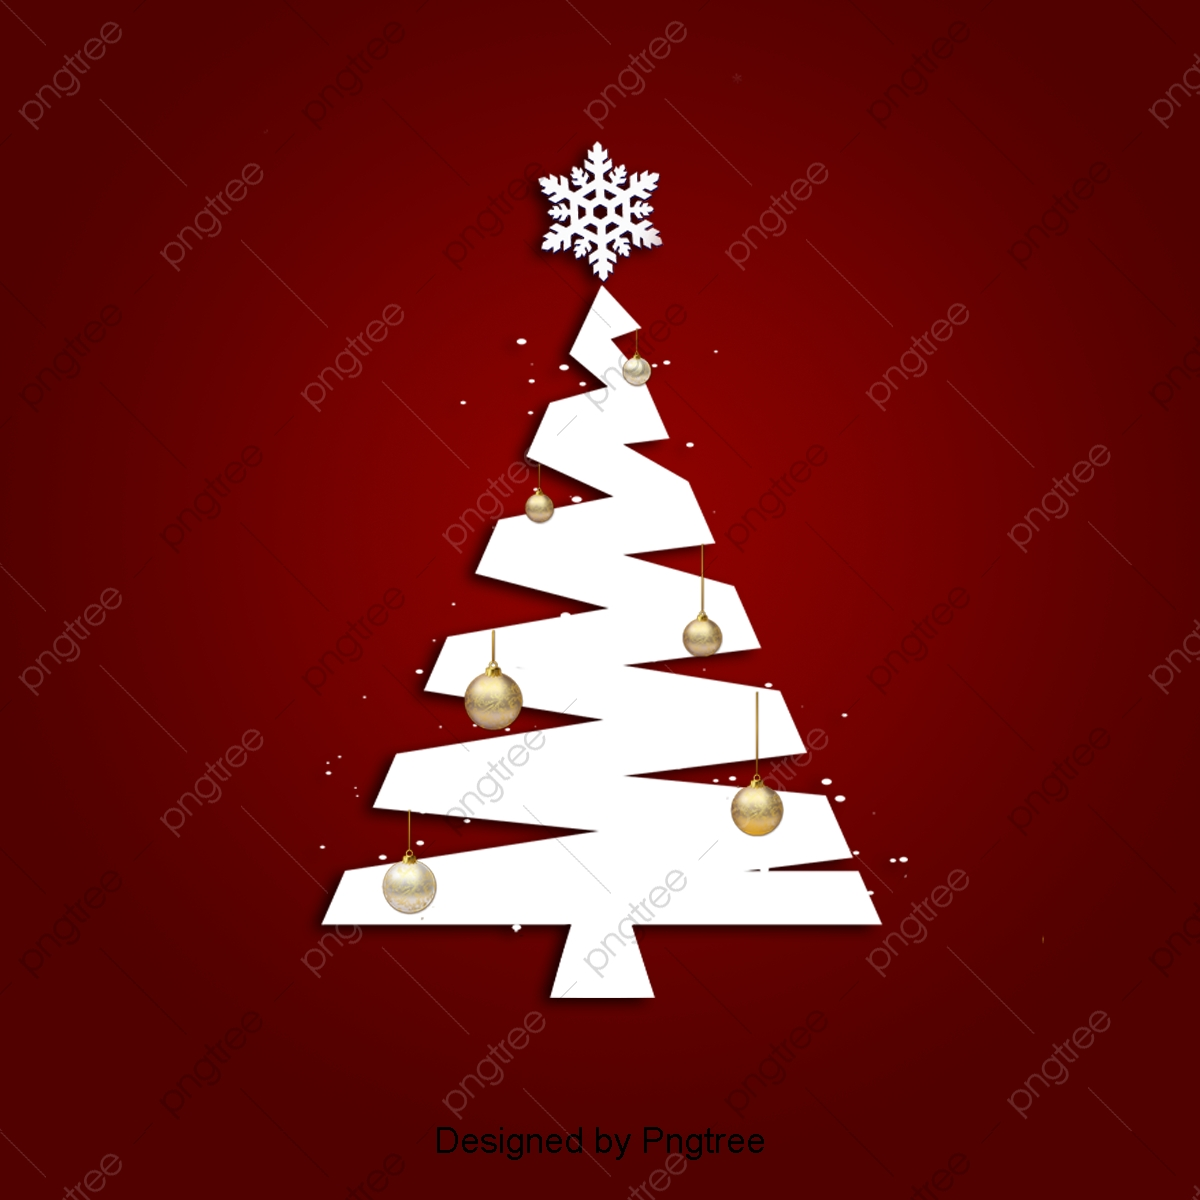 pngtree dark red retro christmas tree background png image 3710904